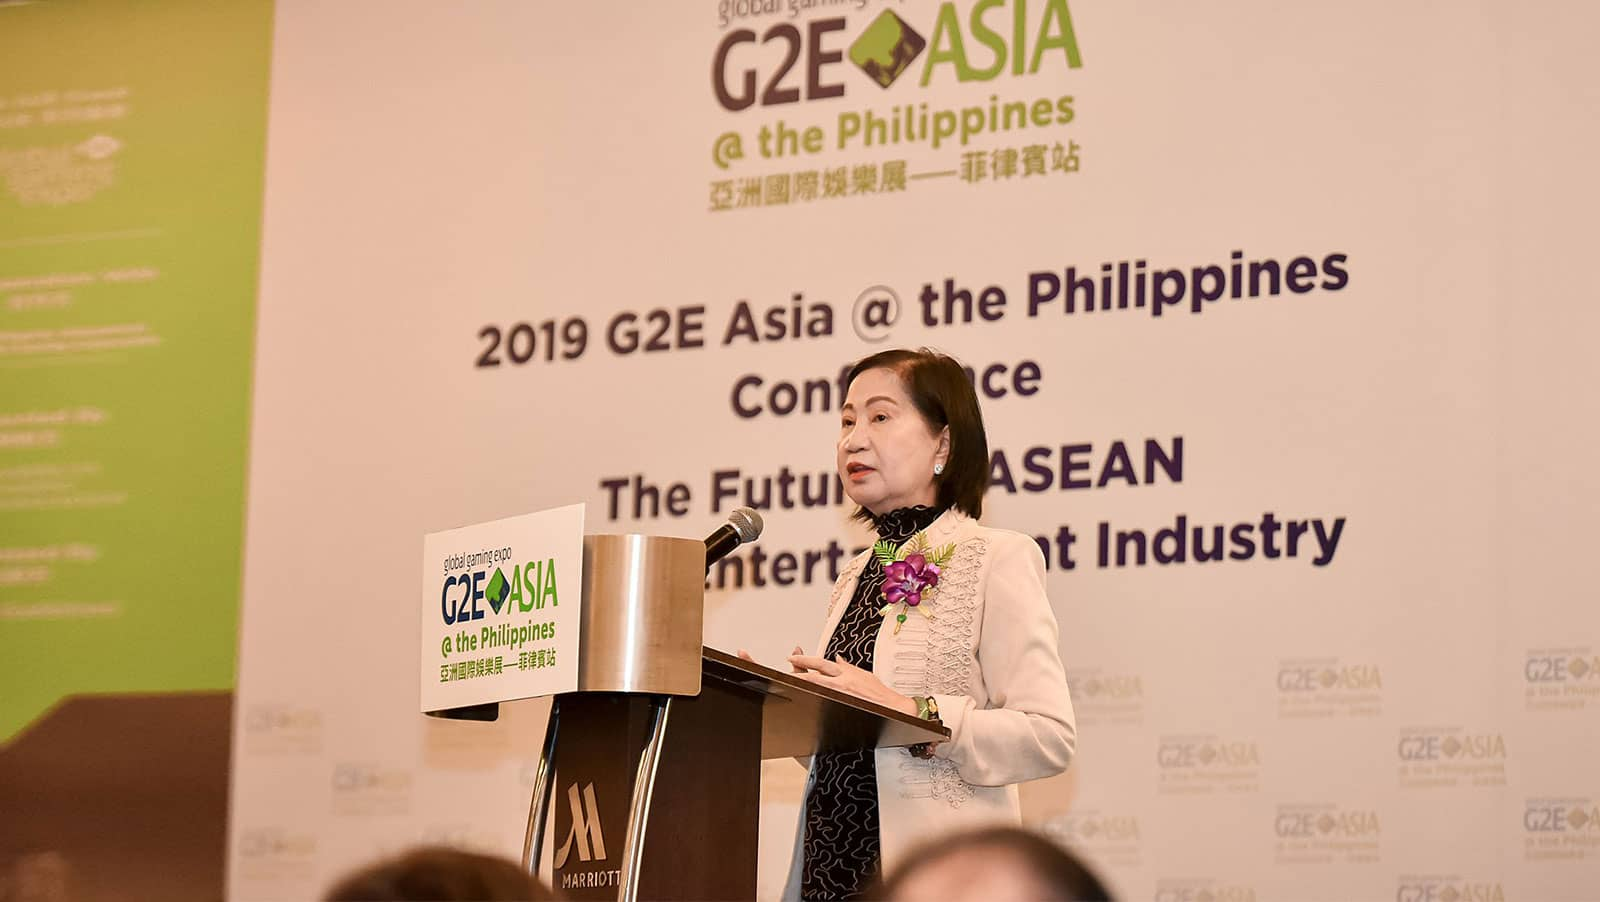 g2e-asia-the-philippines-makes-its-successful-debut-in-manila-min